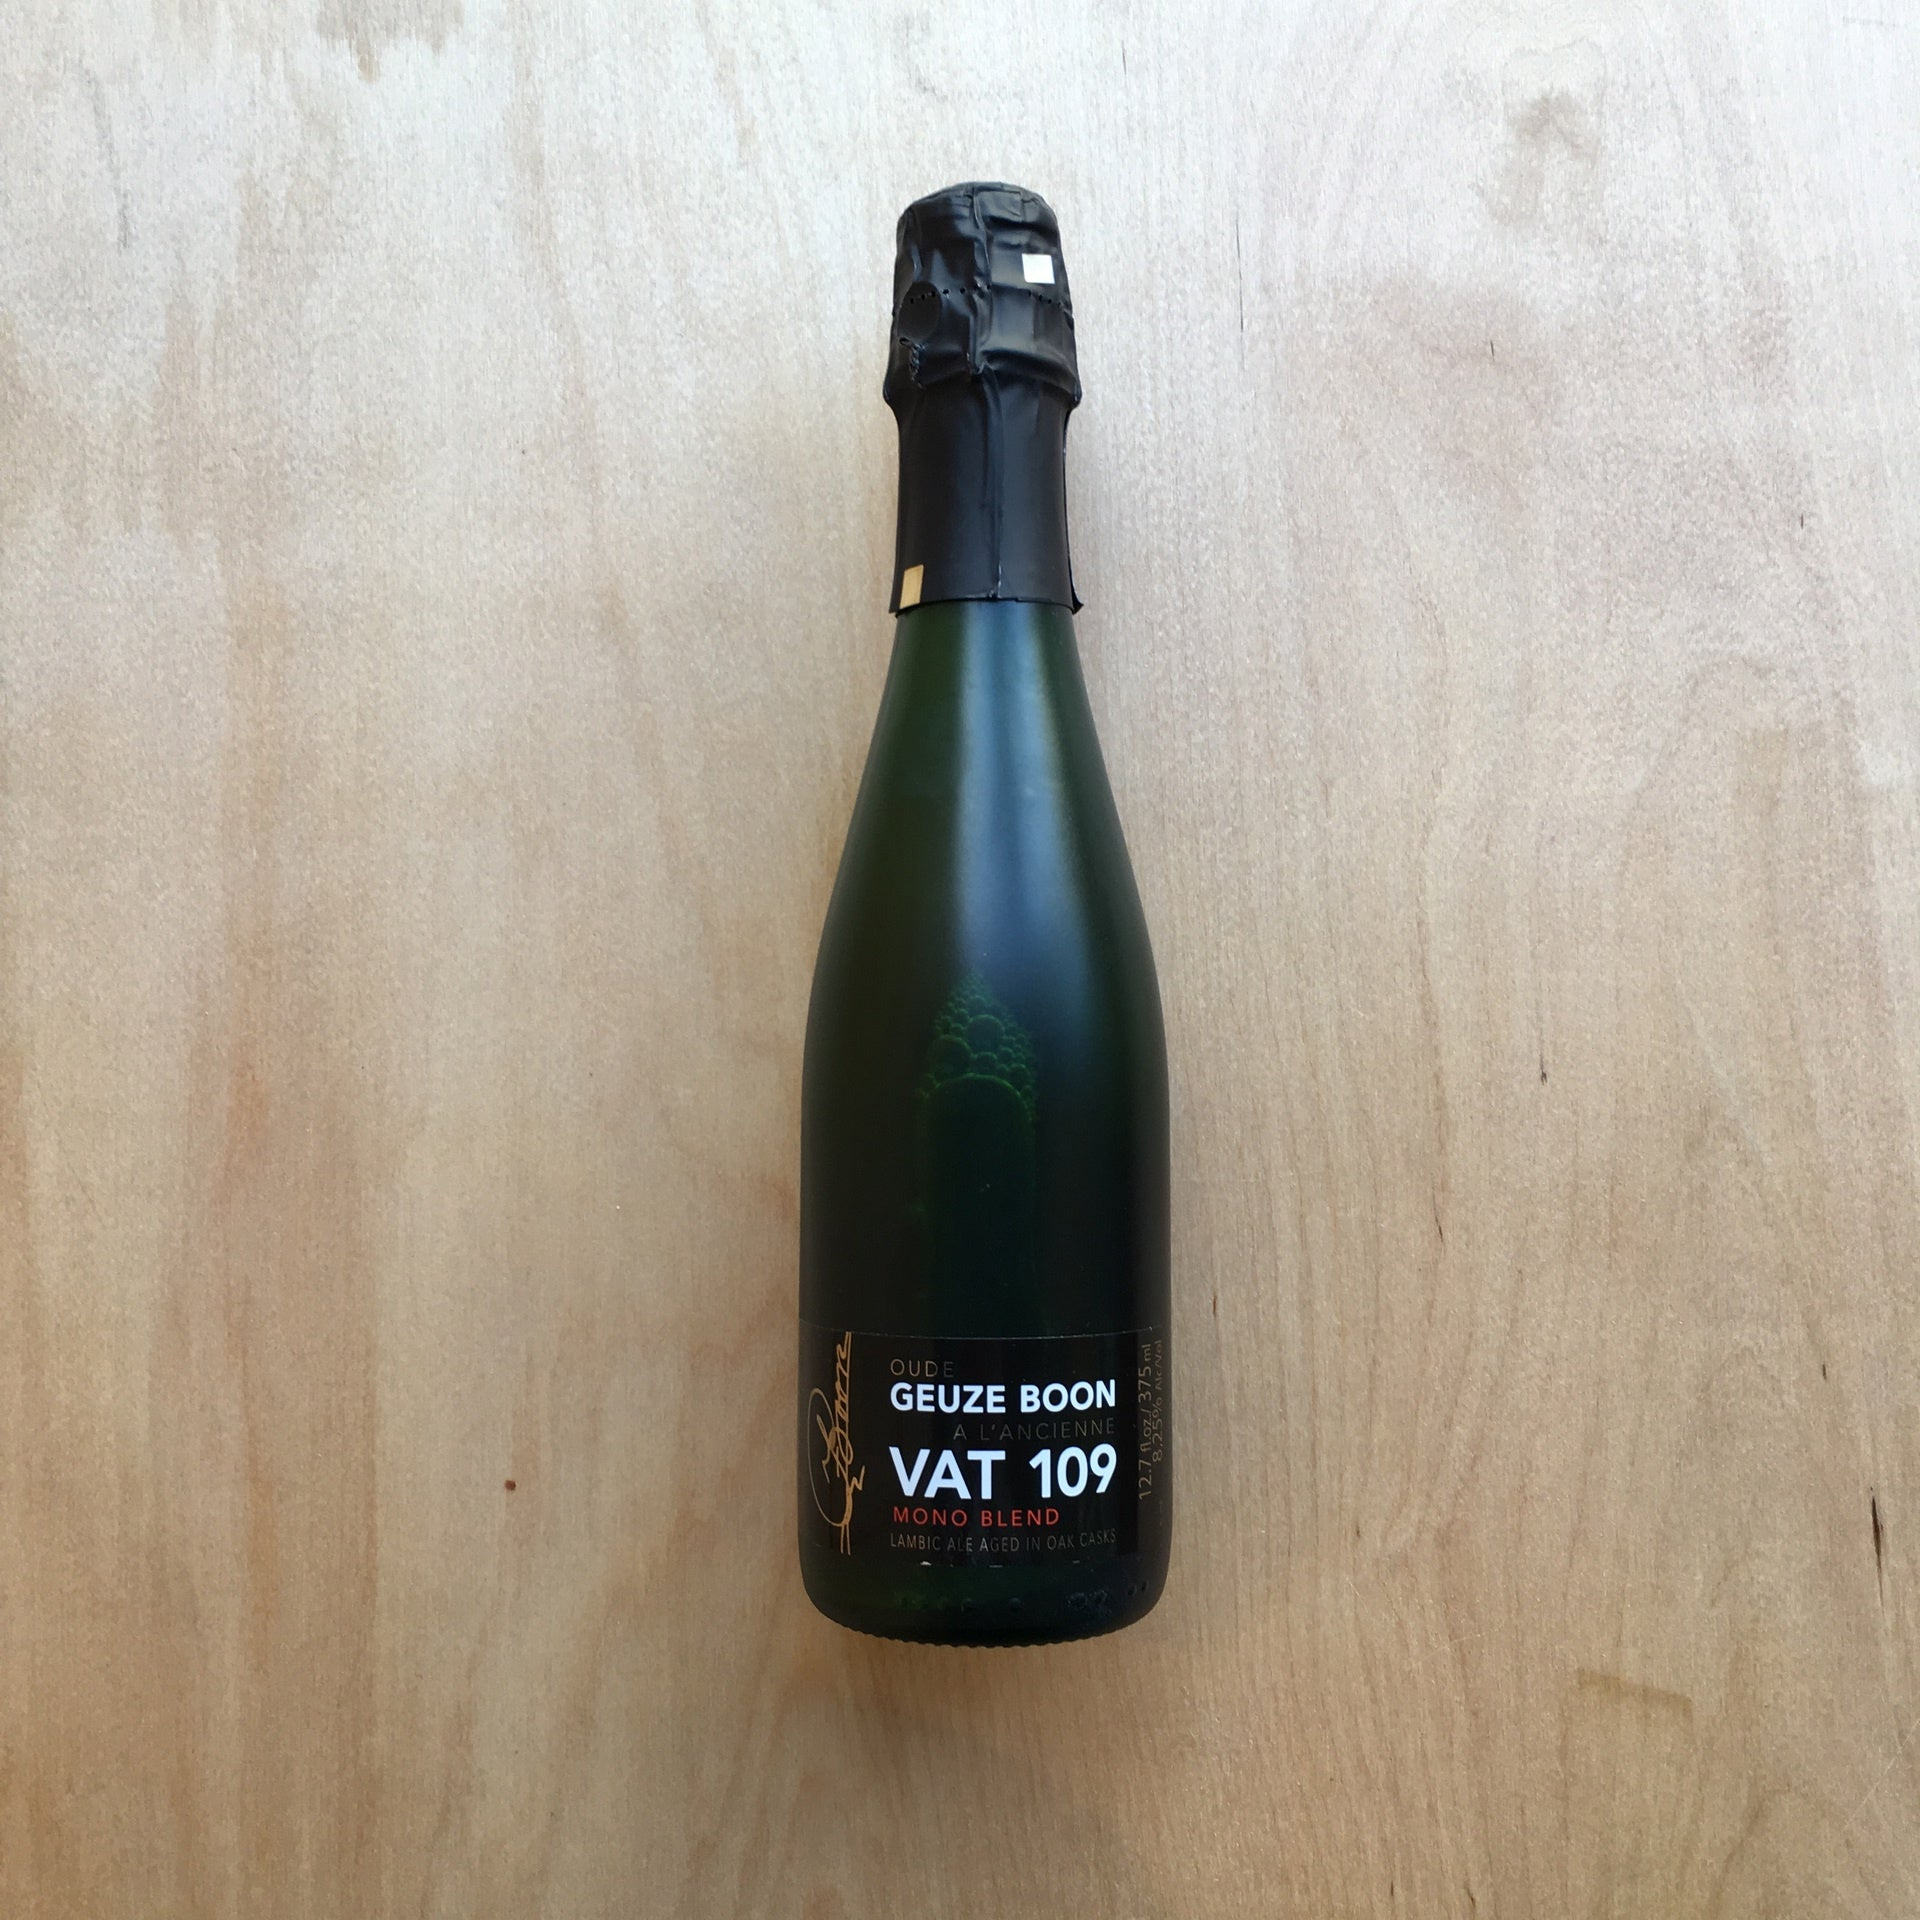 Geuze Boon VAT 109 8% (375ml)